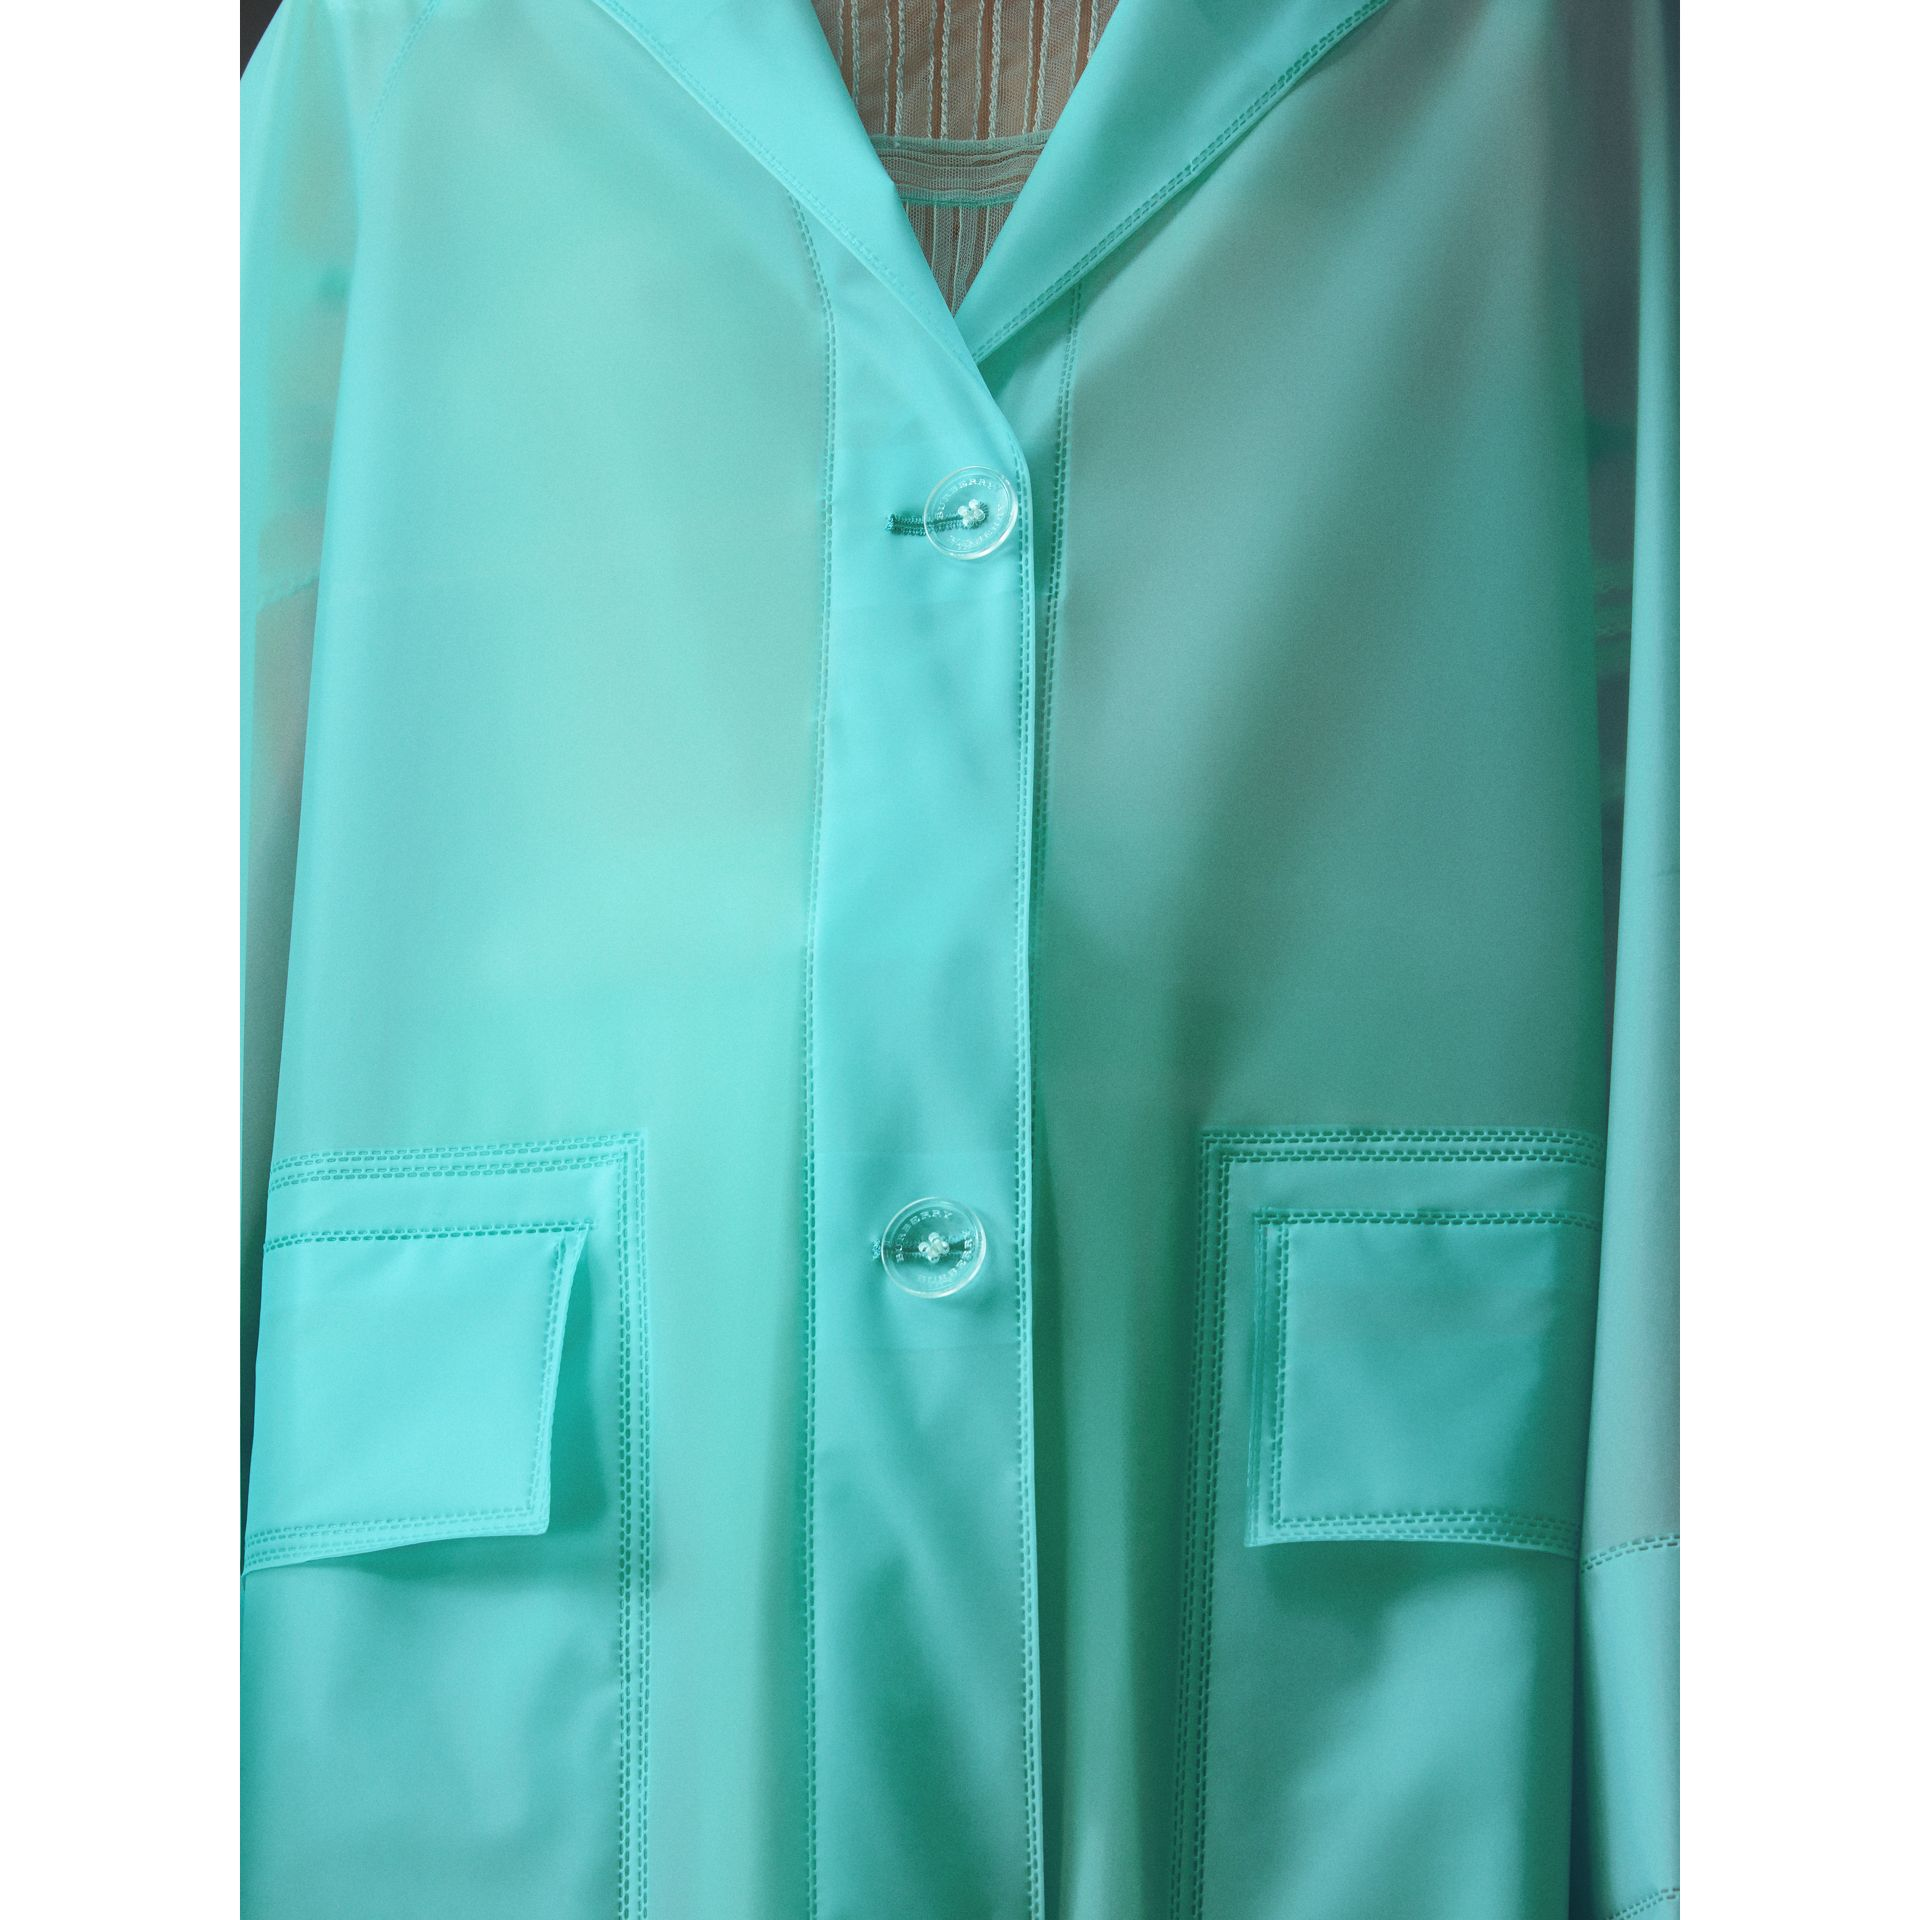 Soft-touch Plastic Car Coat in Turquoise - Women | Burberry Australia - gallery image 2